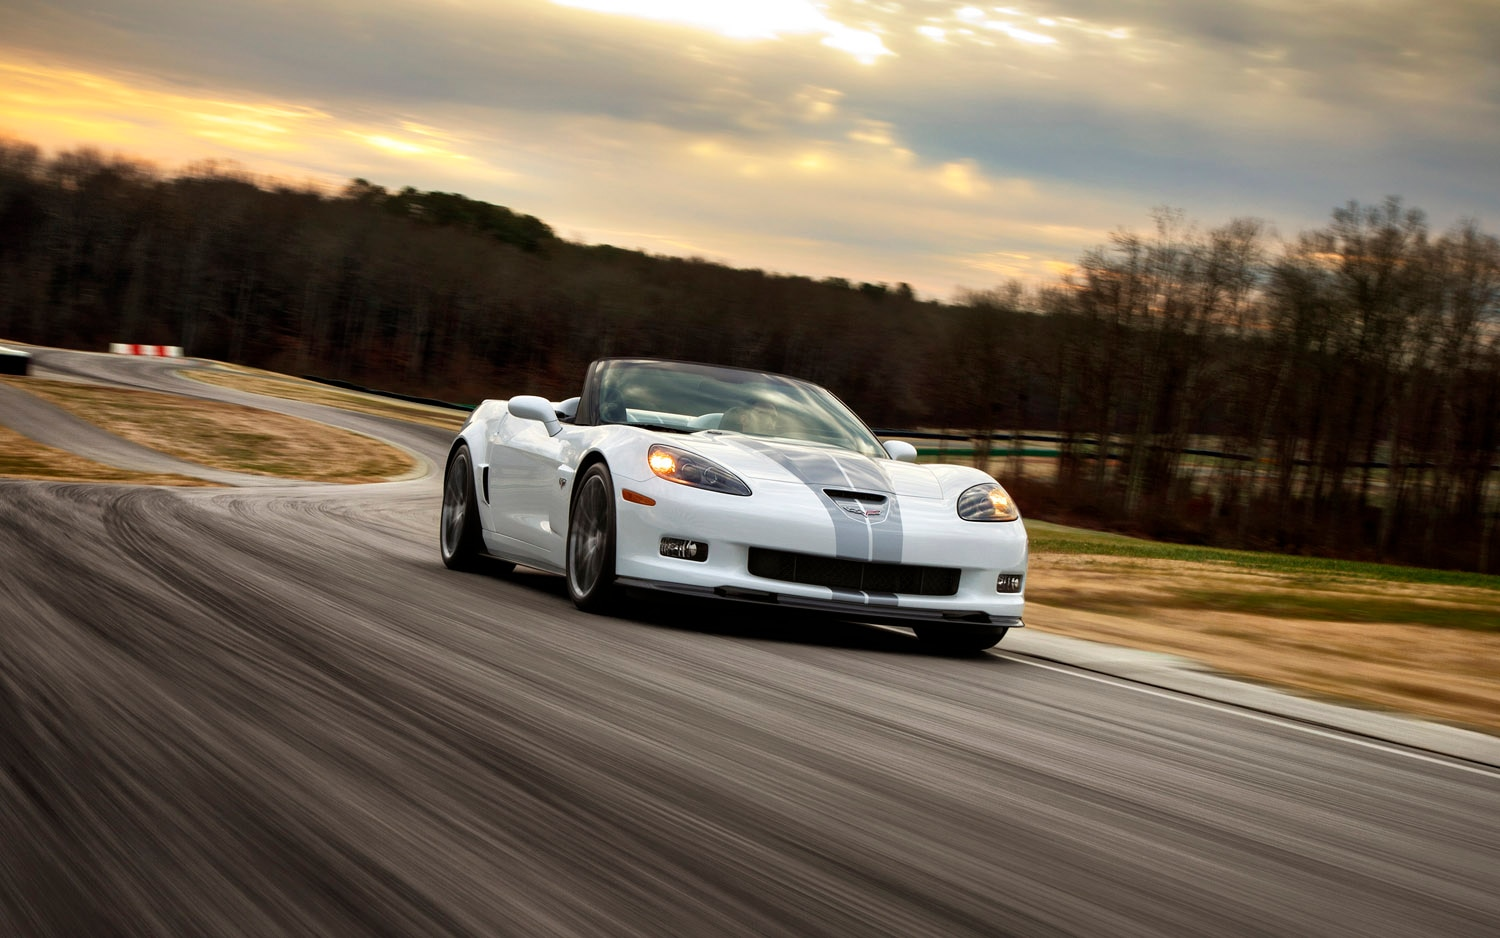 2013 Chevrolet Corvette 427 Convertible Front Three Quarter1